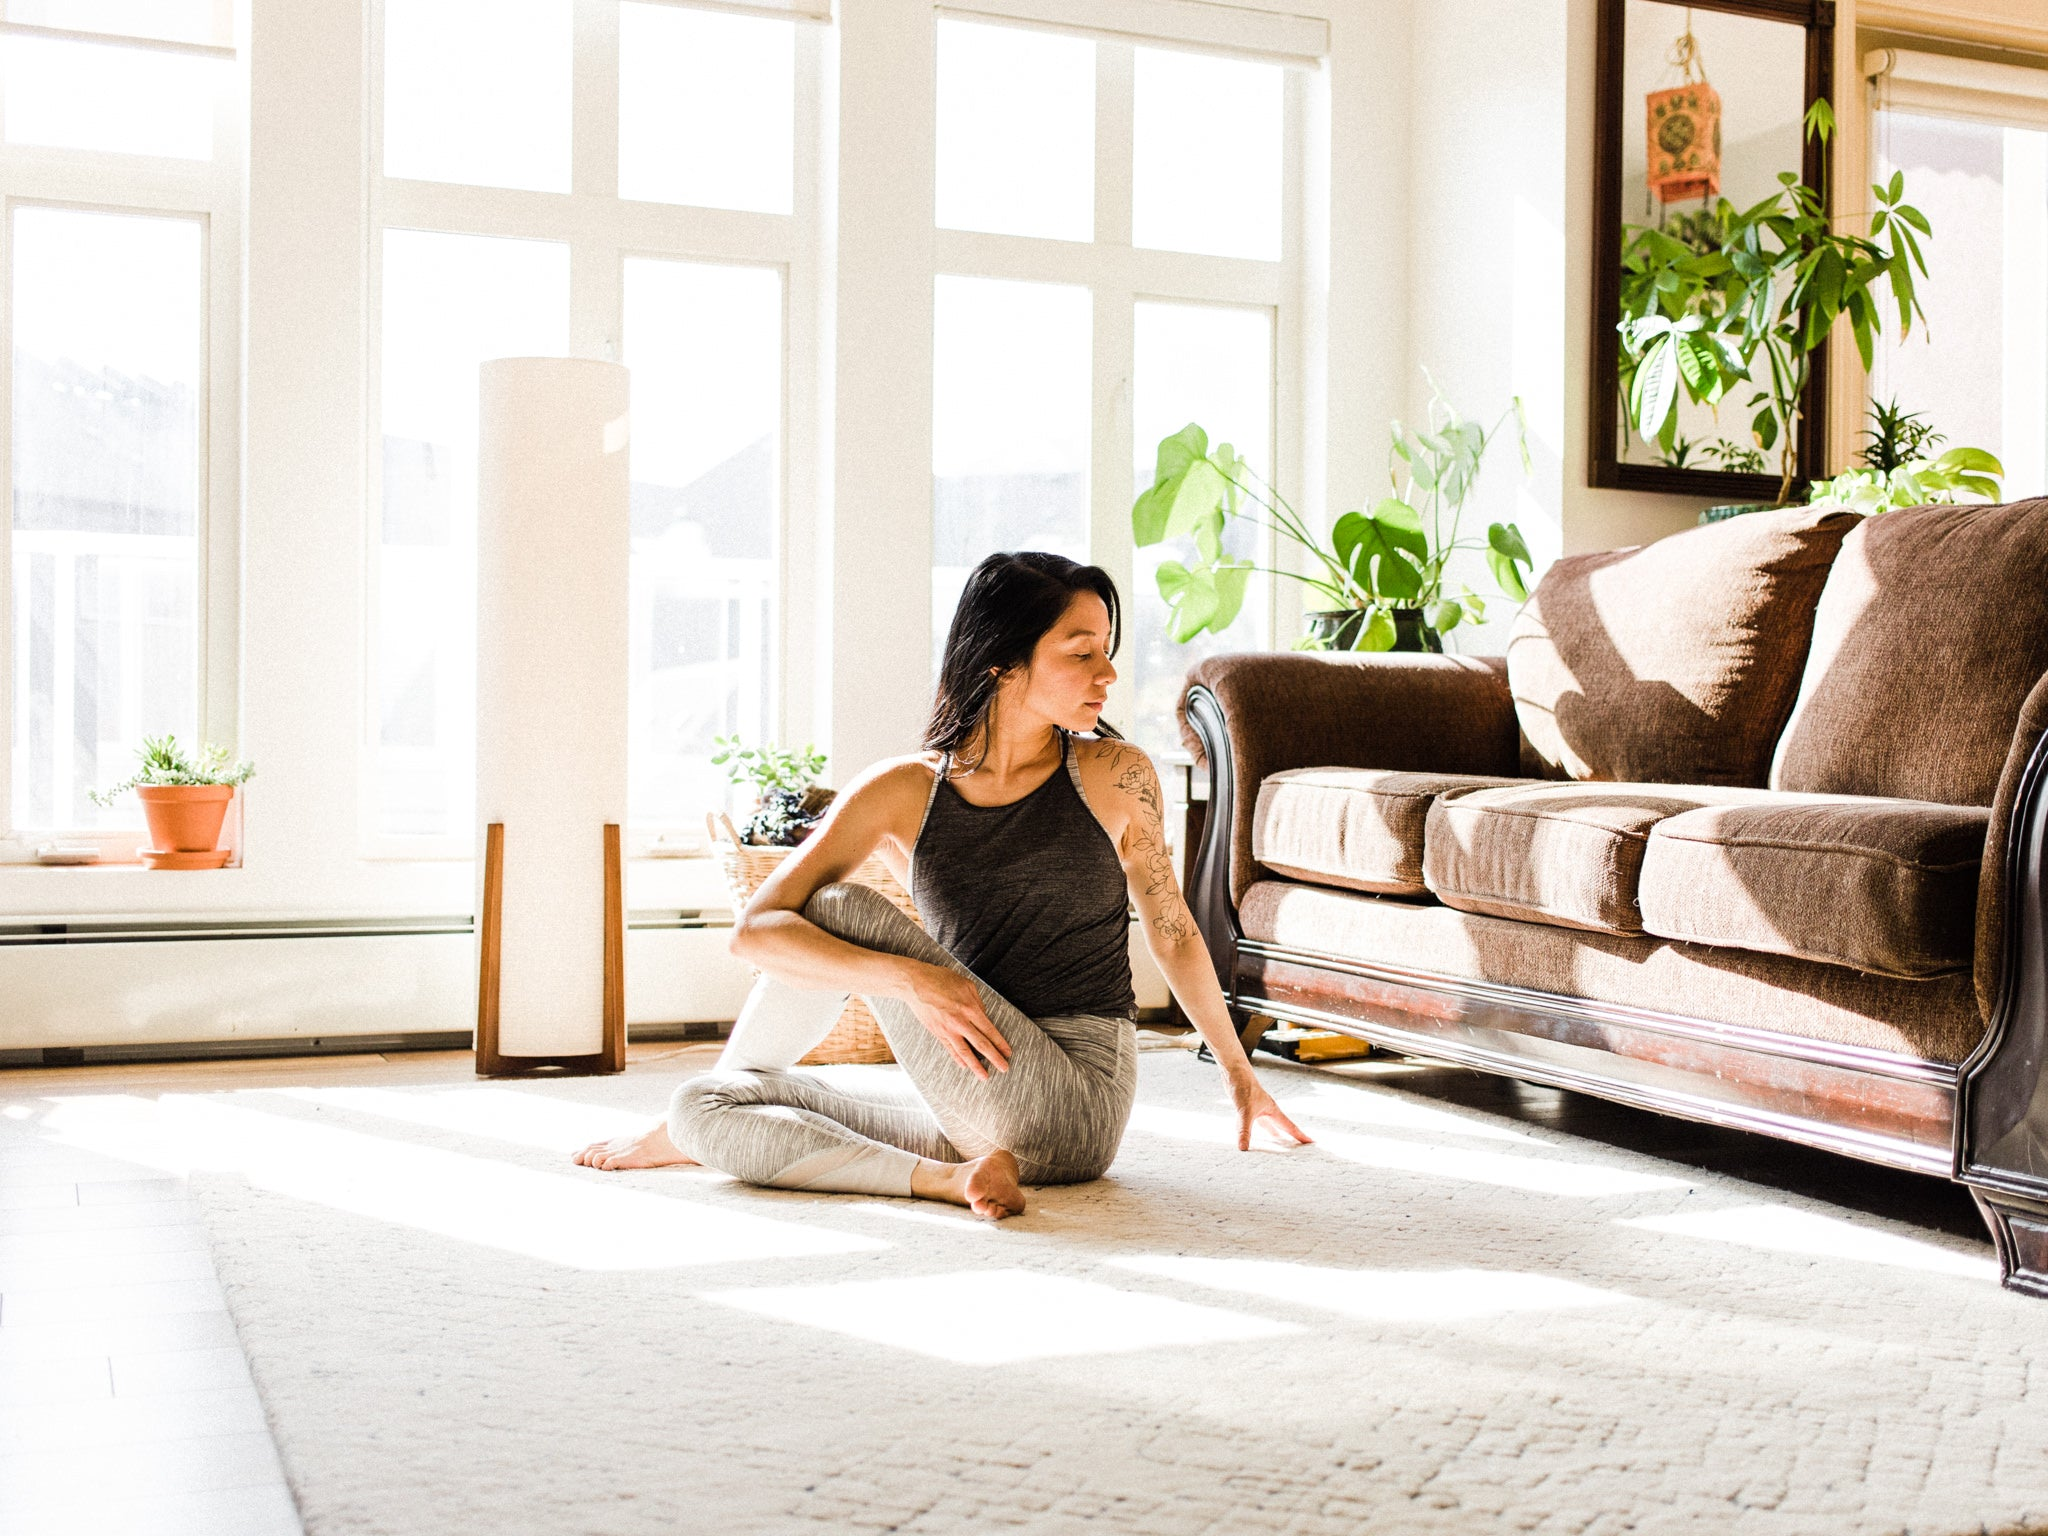 Woman practicing yoga in her living room.